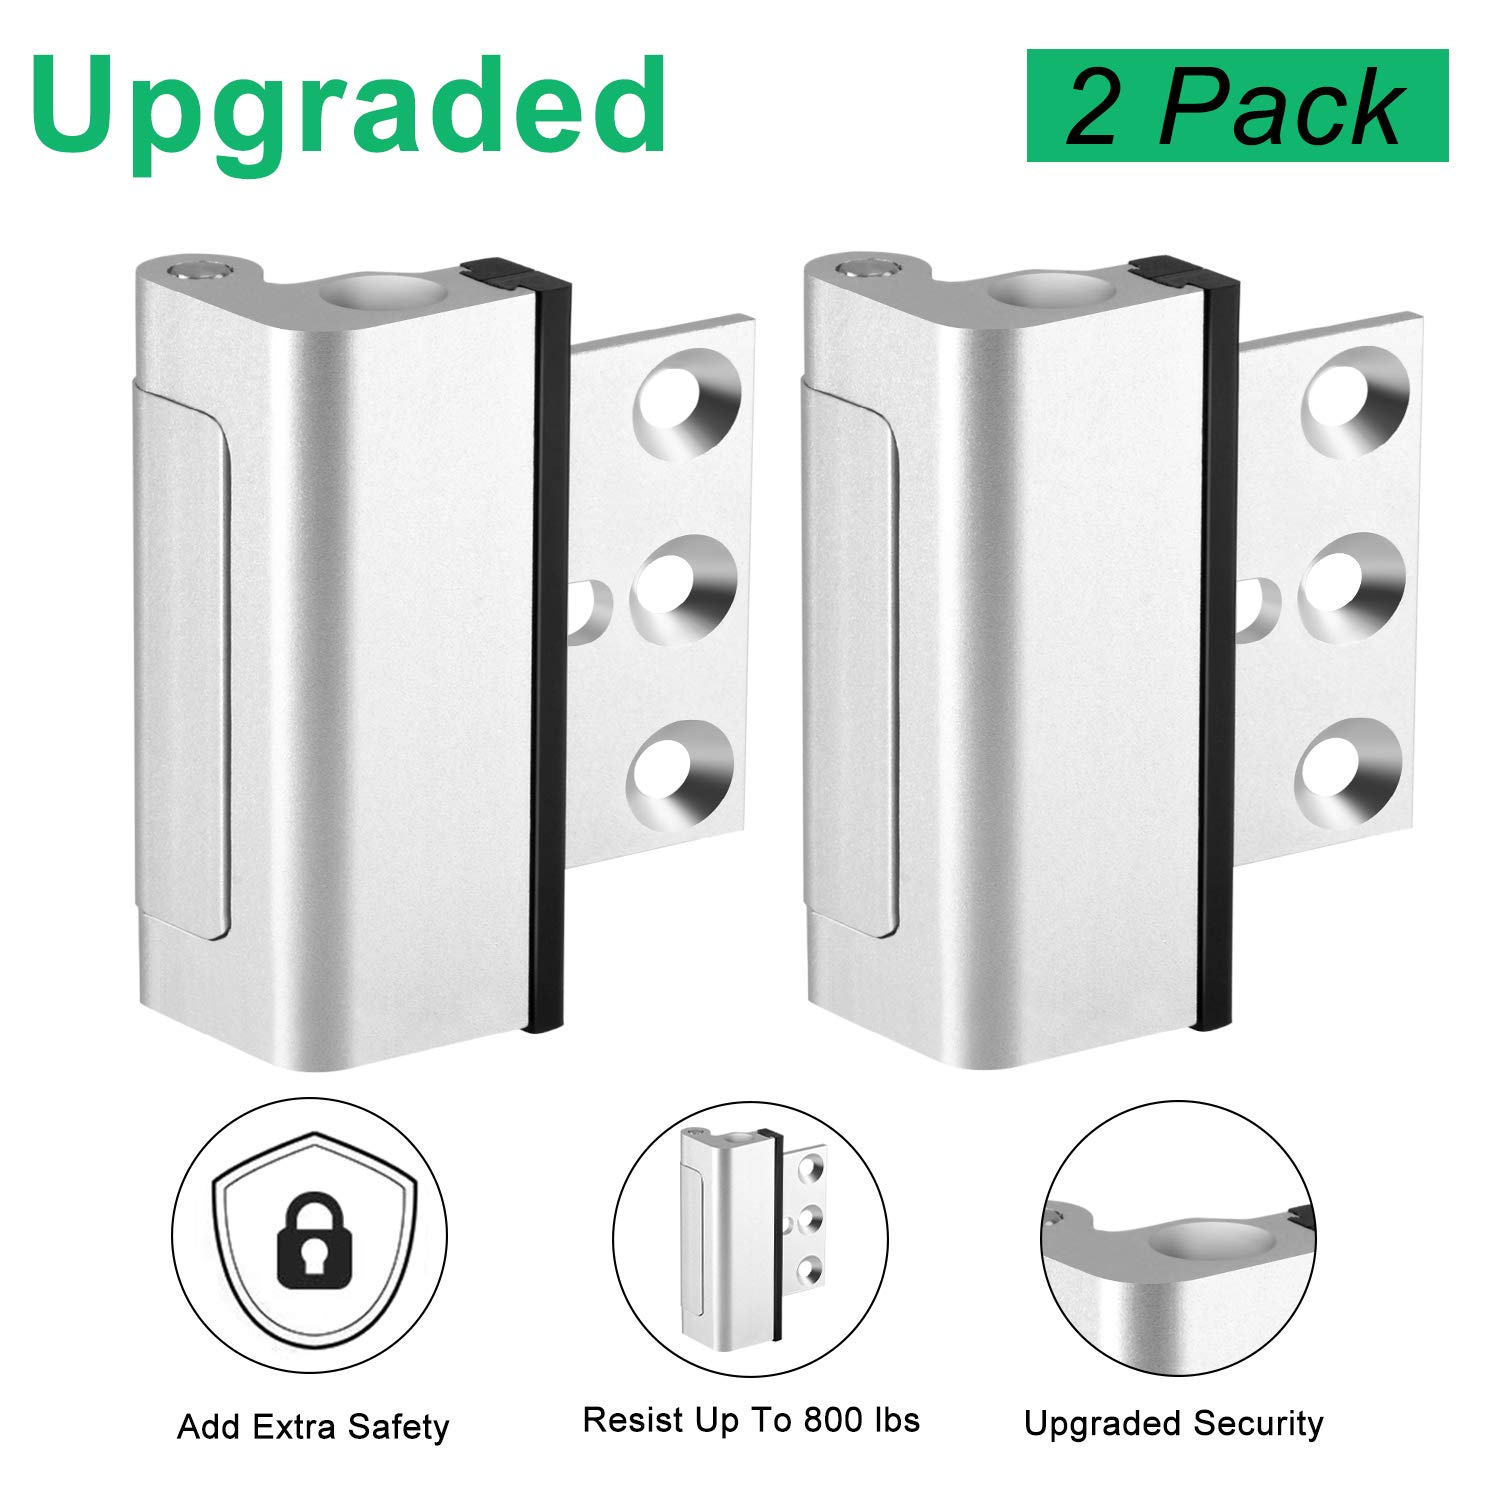 Door Reinforcement Lock, Upgrade Design Easy Open Childproof Security Door Lock with 3'' Stop Withstand 800 lbs for Inward Swinging Door, Safety Security Protection for Your Home (Silver-2 Pack)